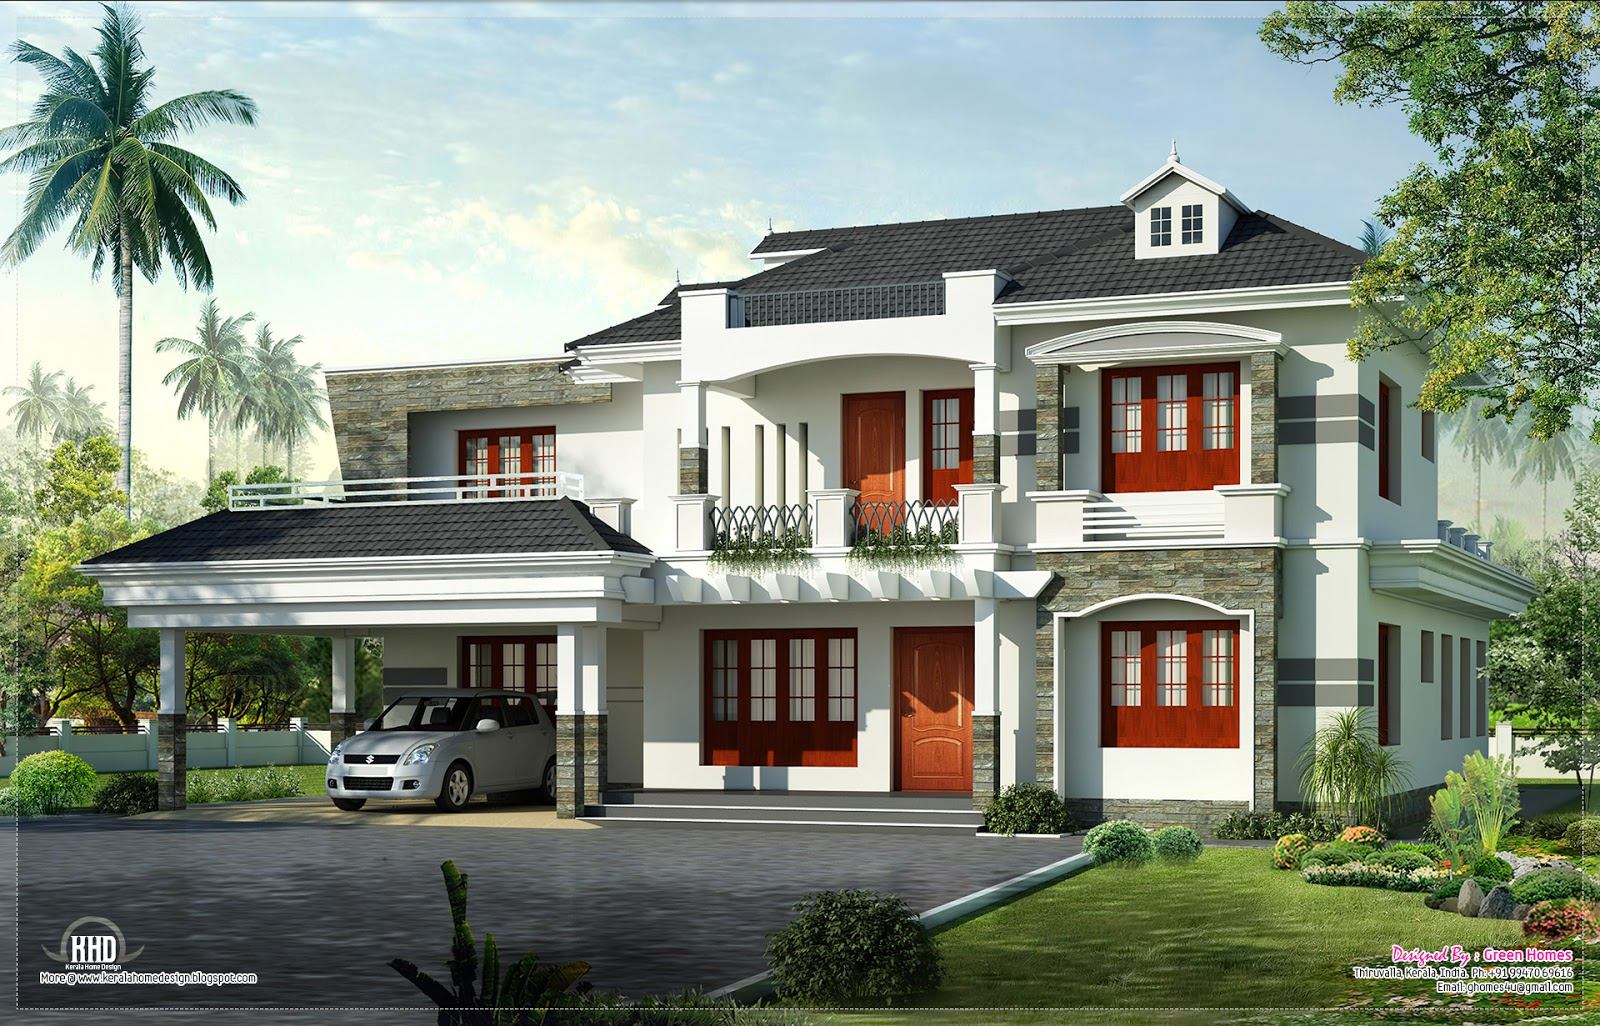 design for new home. New style kerala luxury home exterior plans for designs  Home Designs Kerala modern design